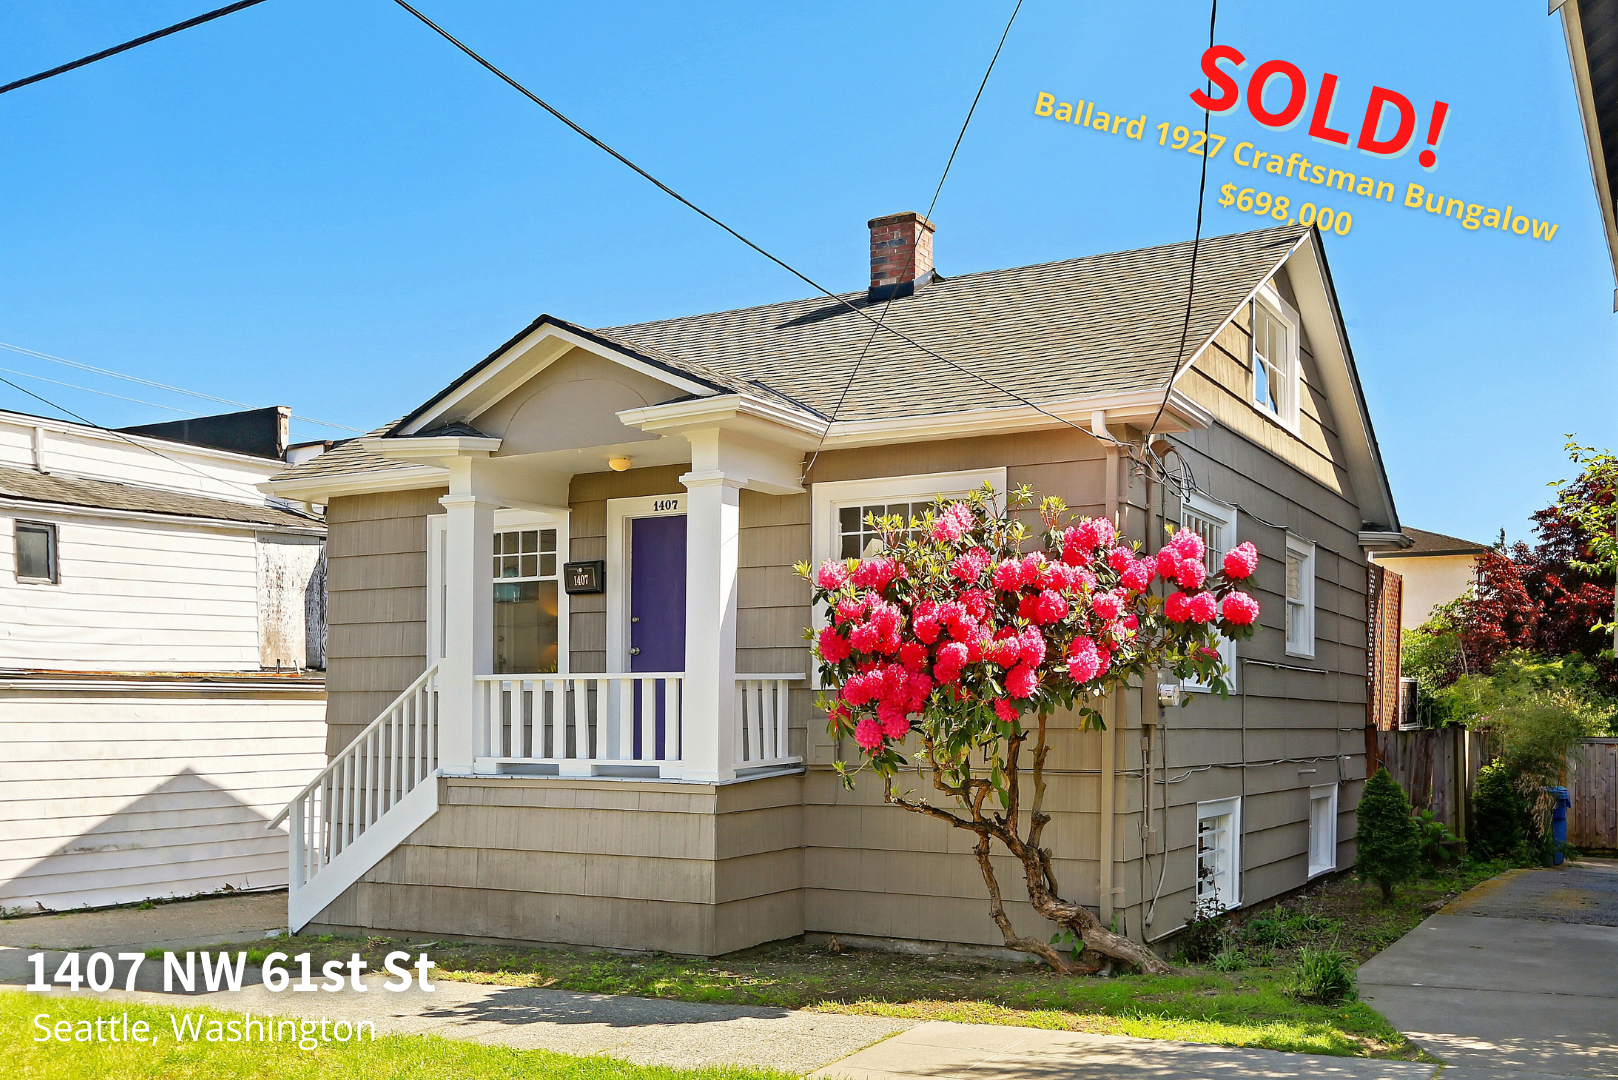 1407 NW 61st St - SOLD